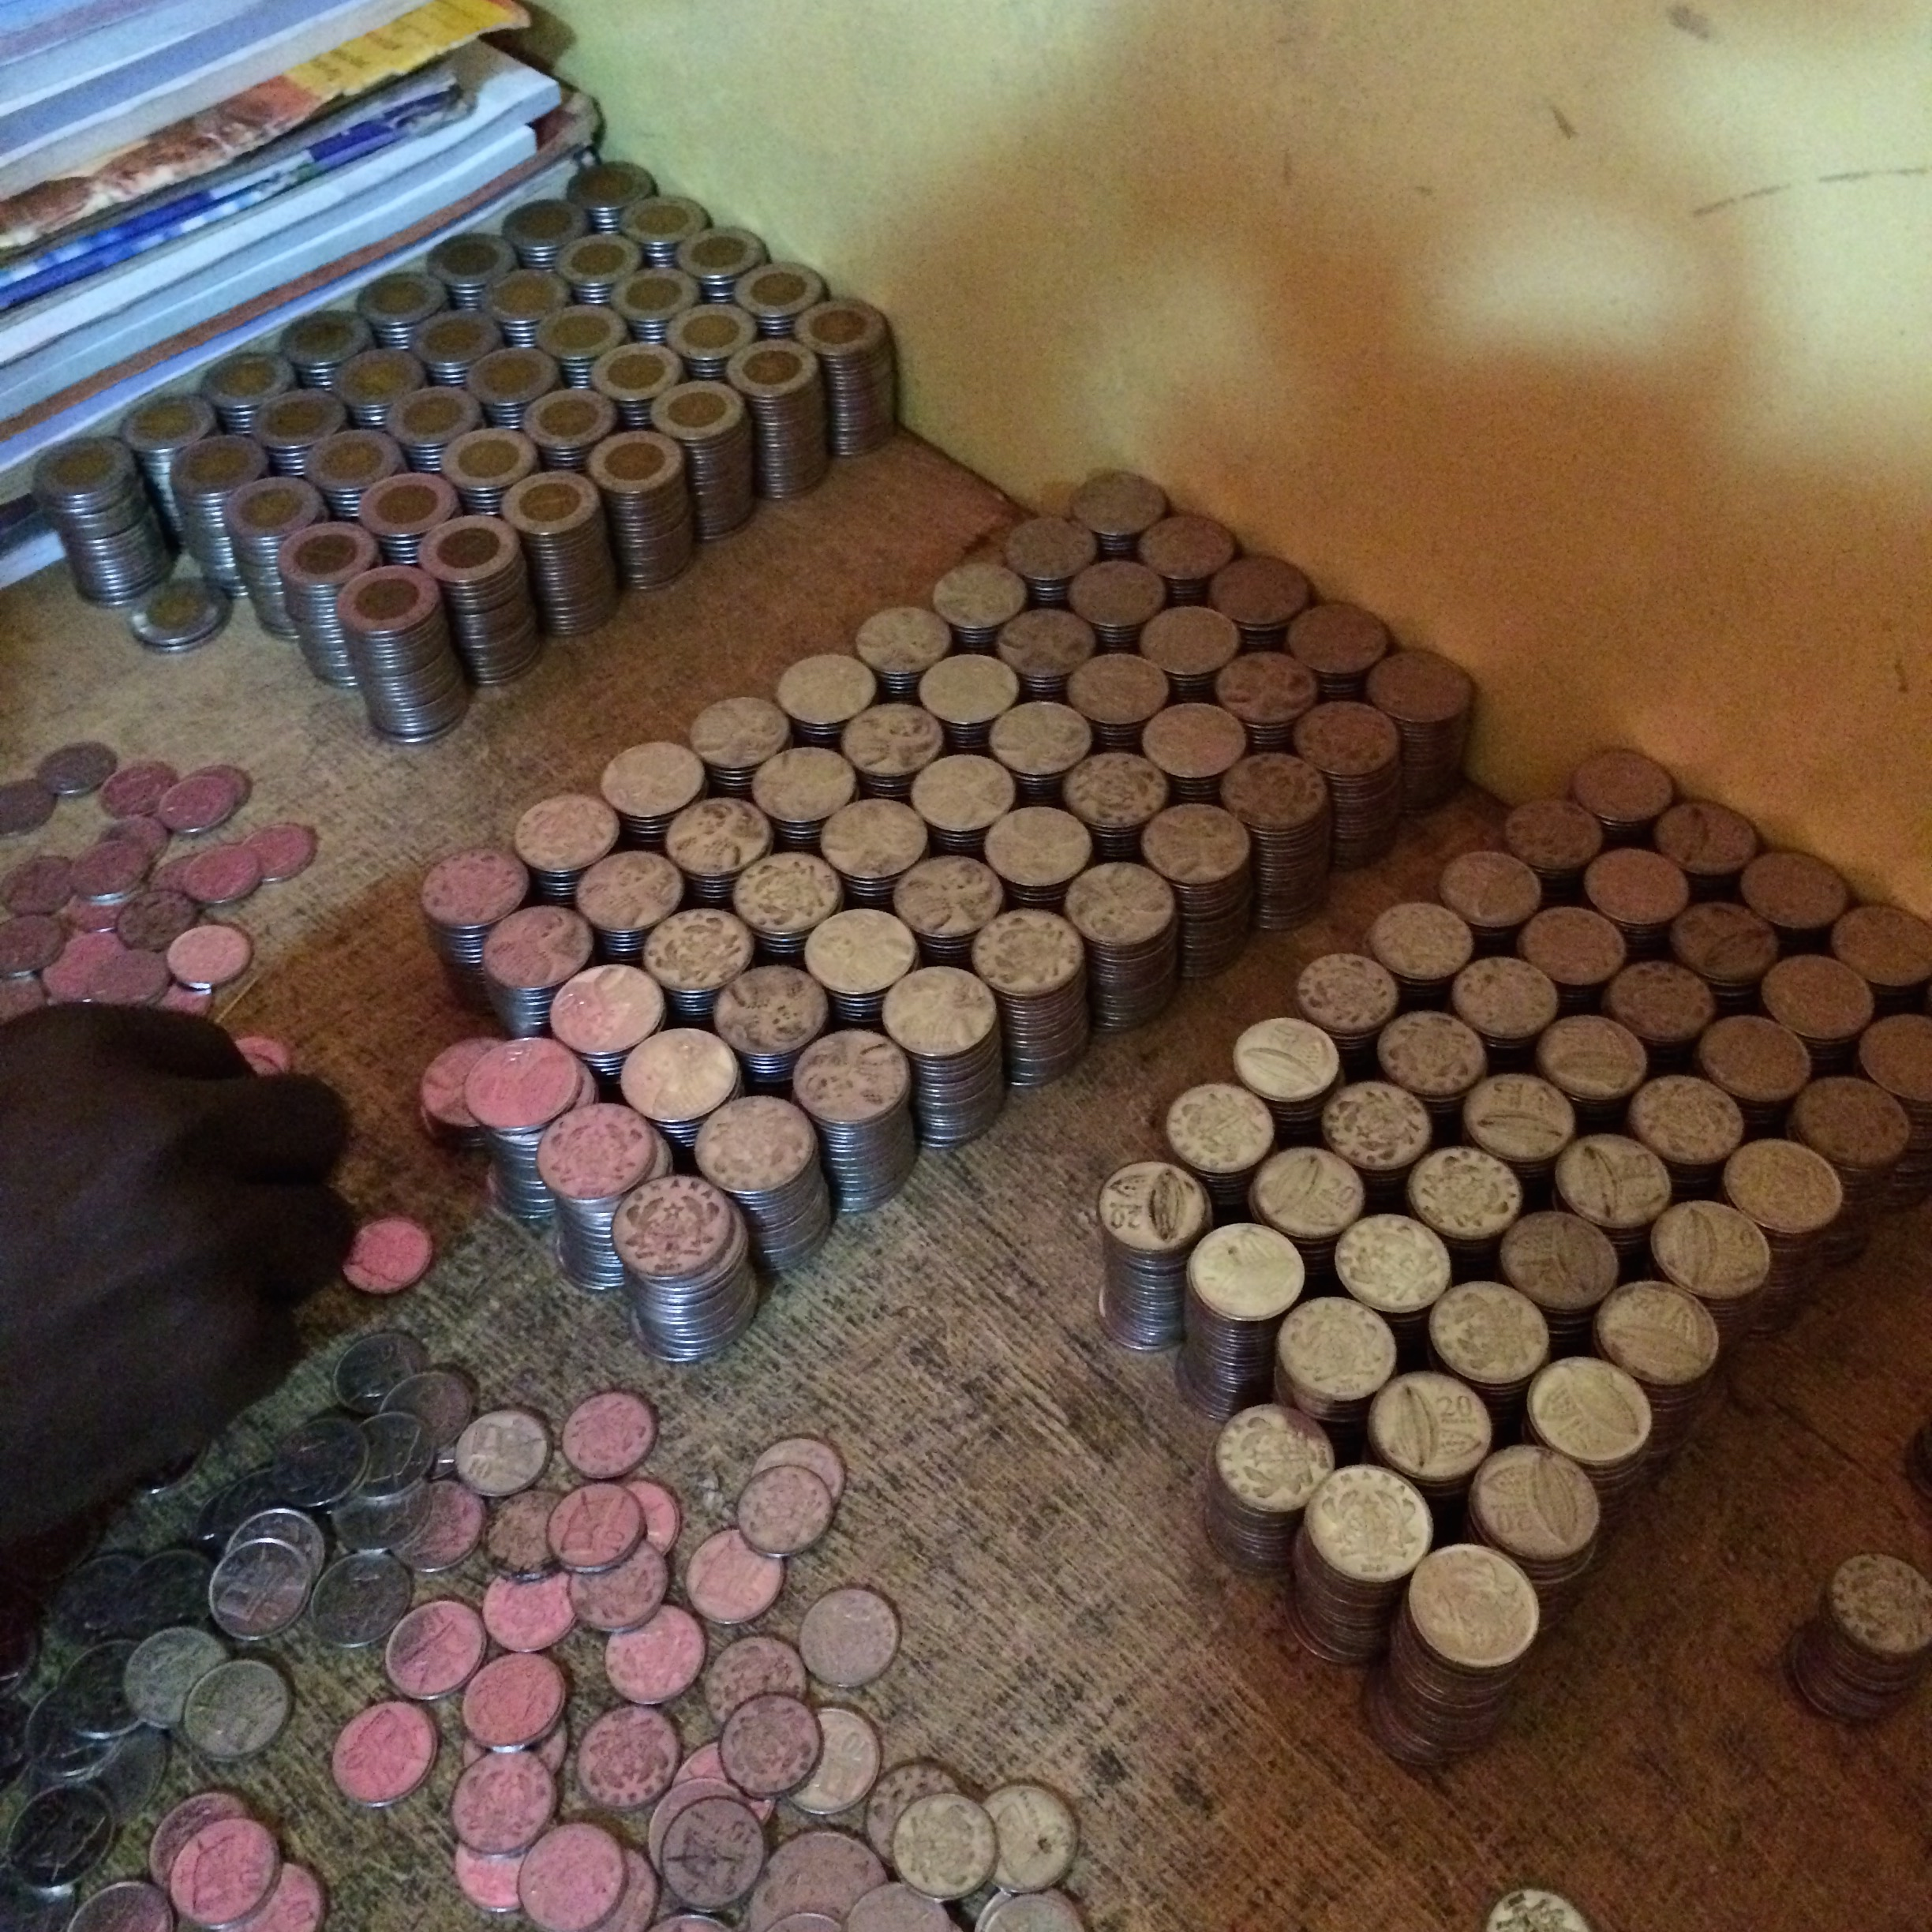 Counting Coins 3.jpg